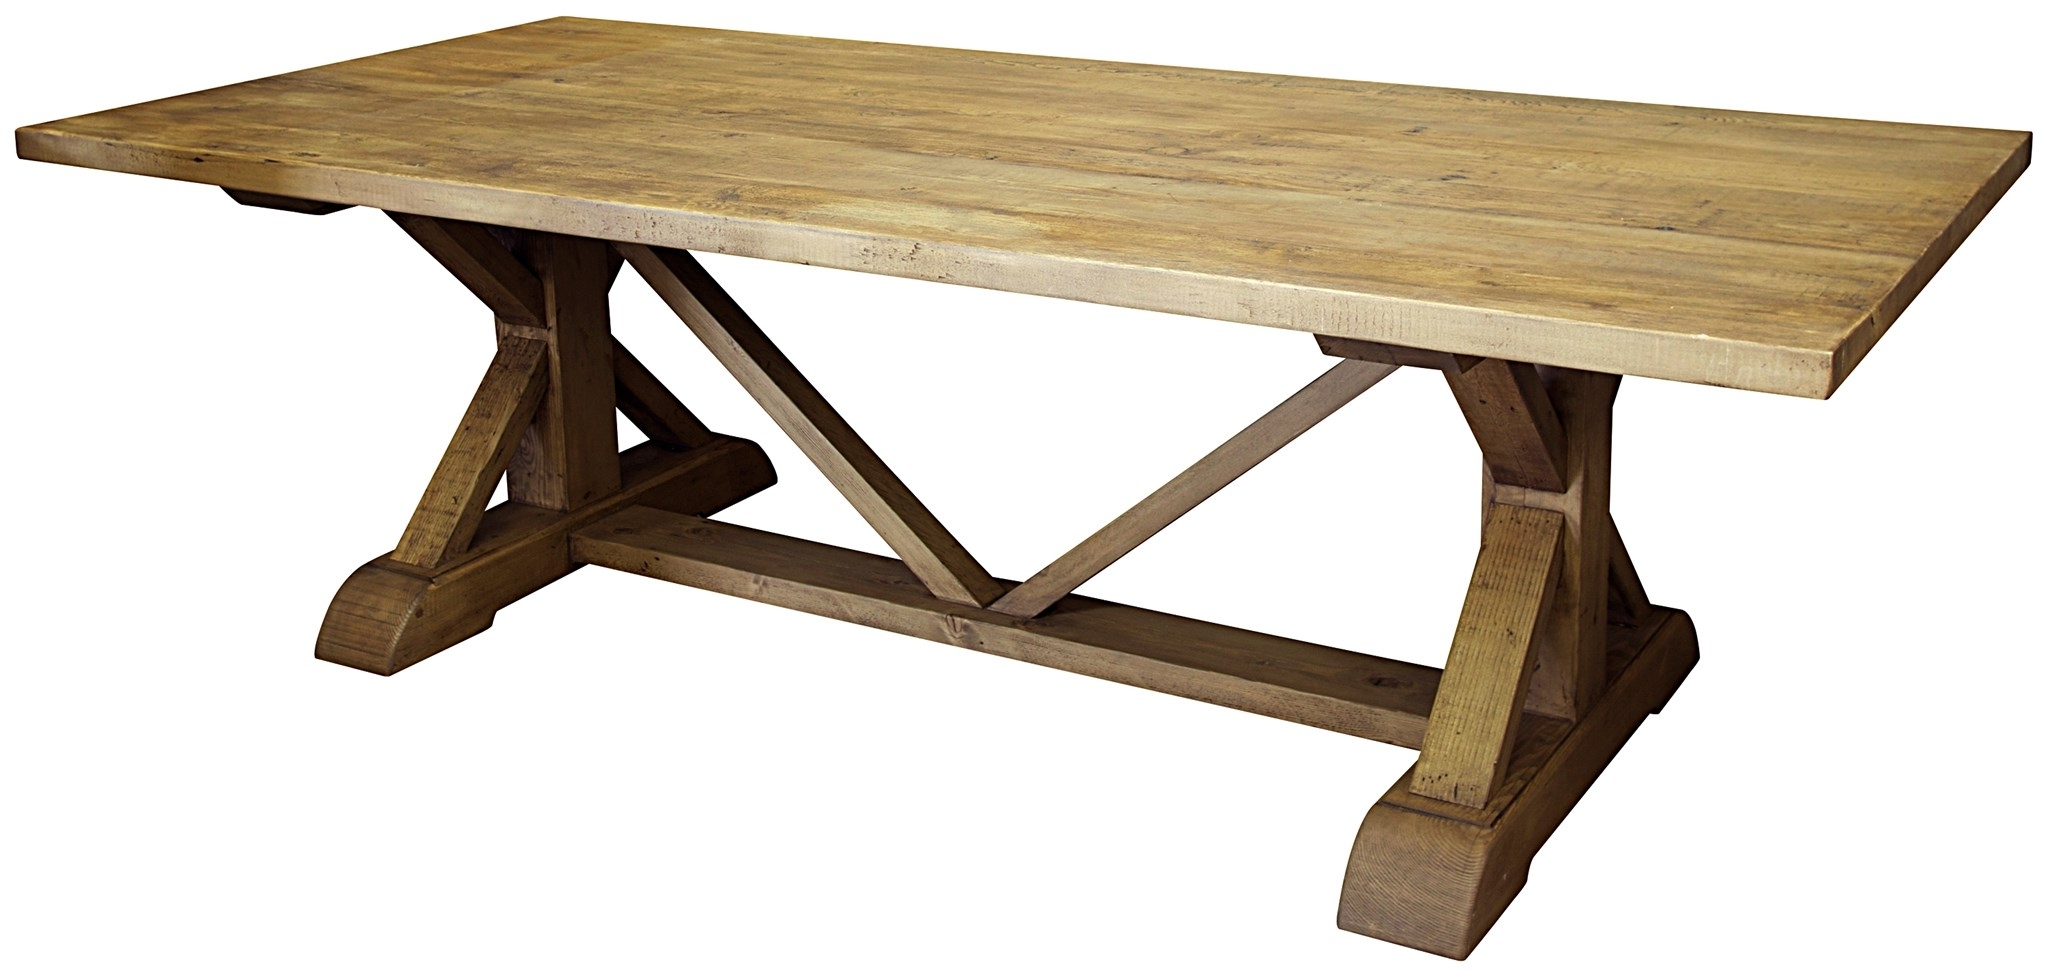 Trendy Cfc :: With Regard To Cheap Reclaimed Wood Dining Tables (View 5 of 25)